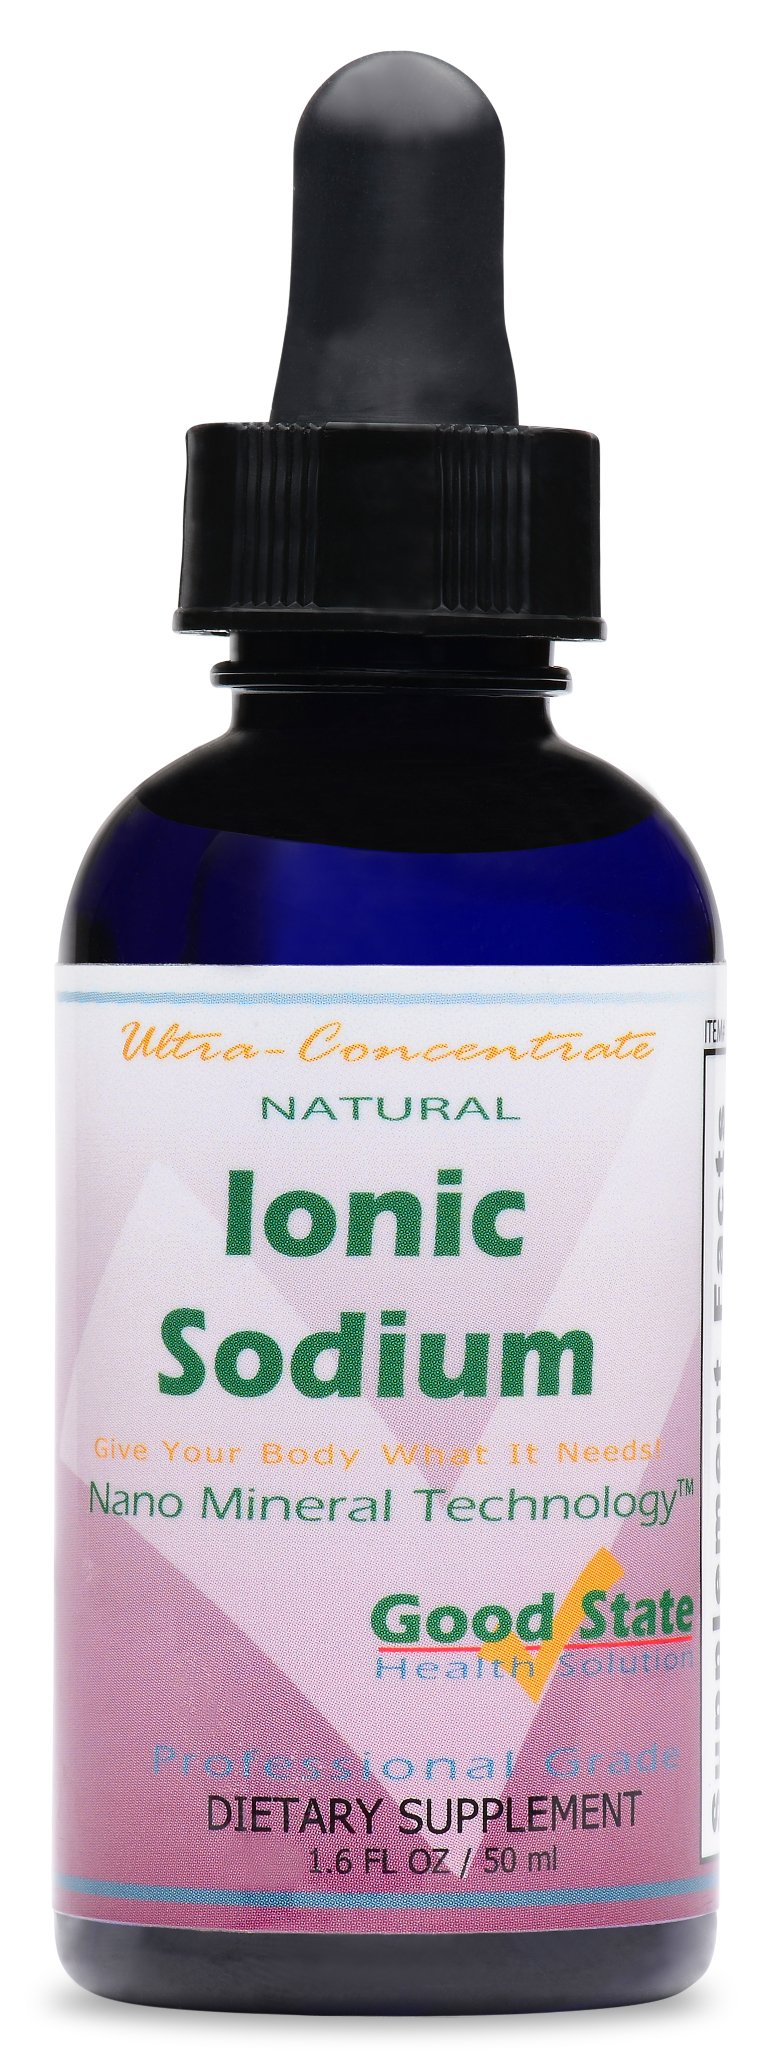 Good State Liquid Ionic Sodium Ultra Concentrate (10 drops equals 70 mg - 100 servings per bottle)